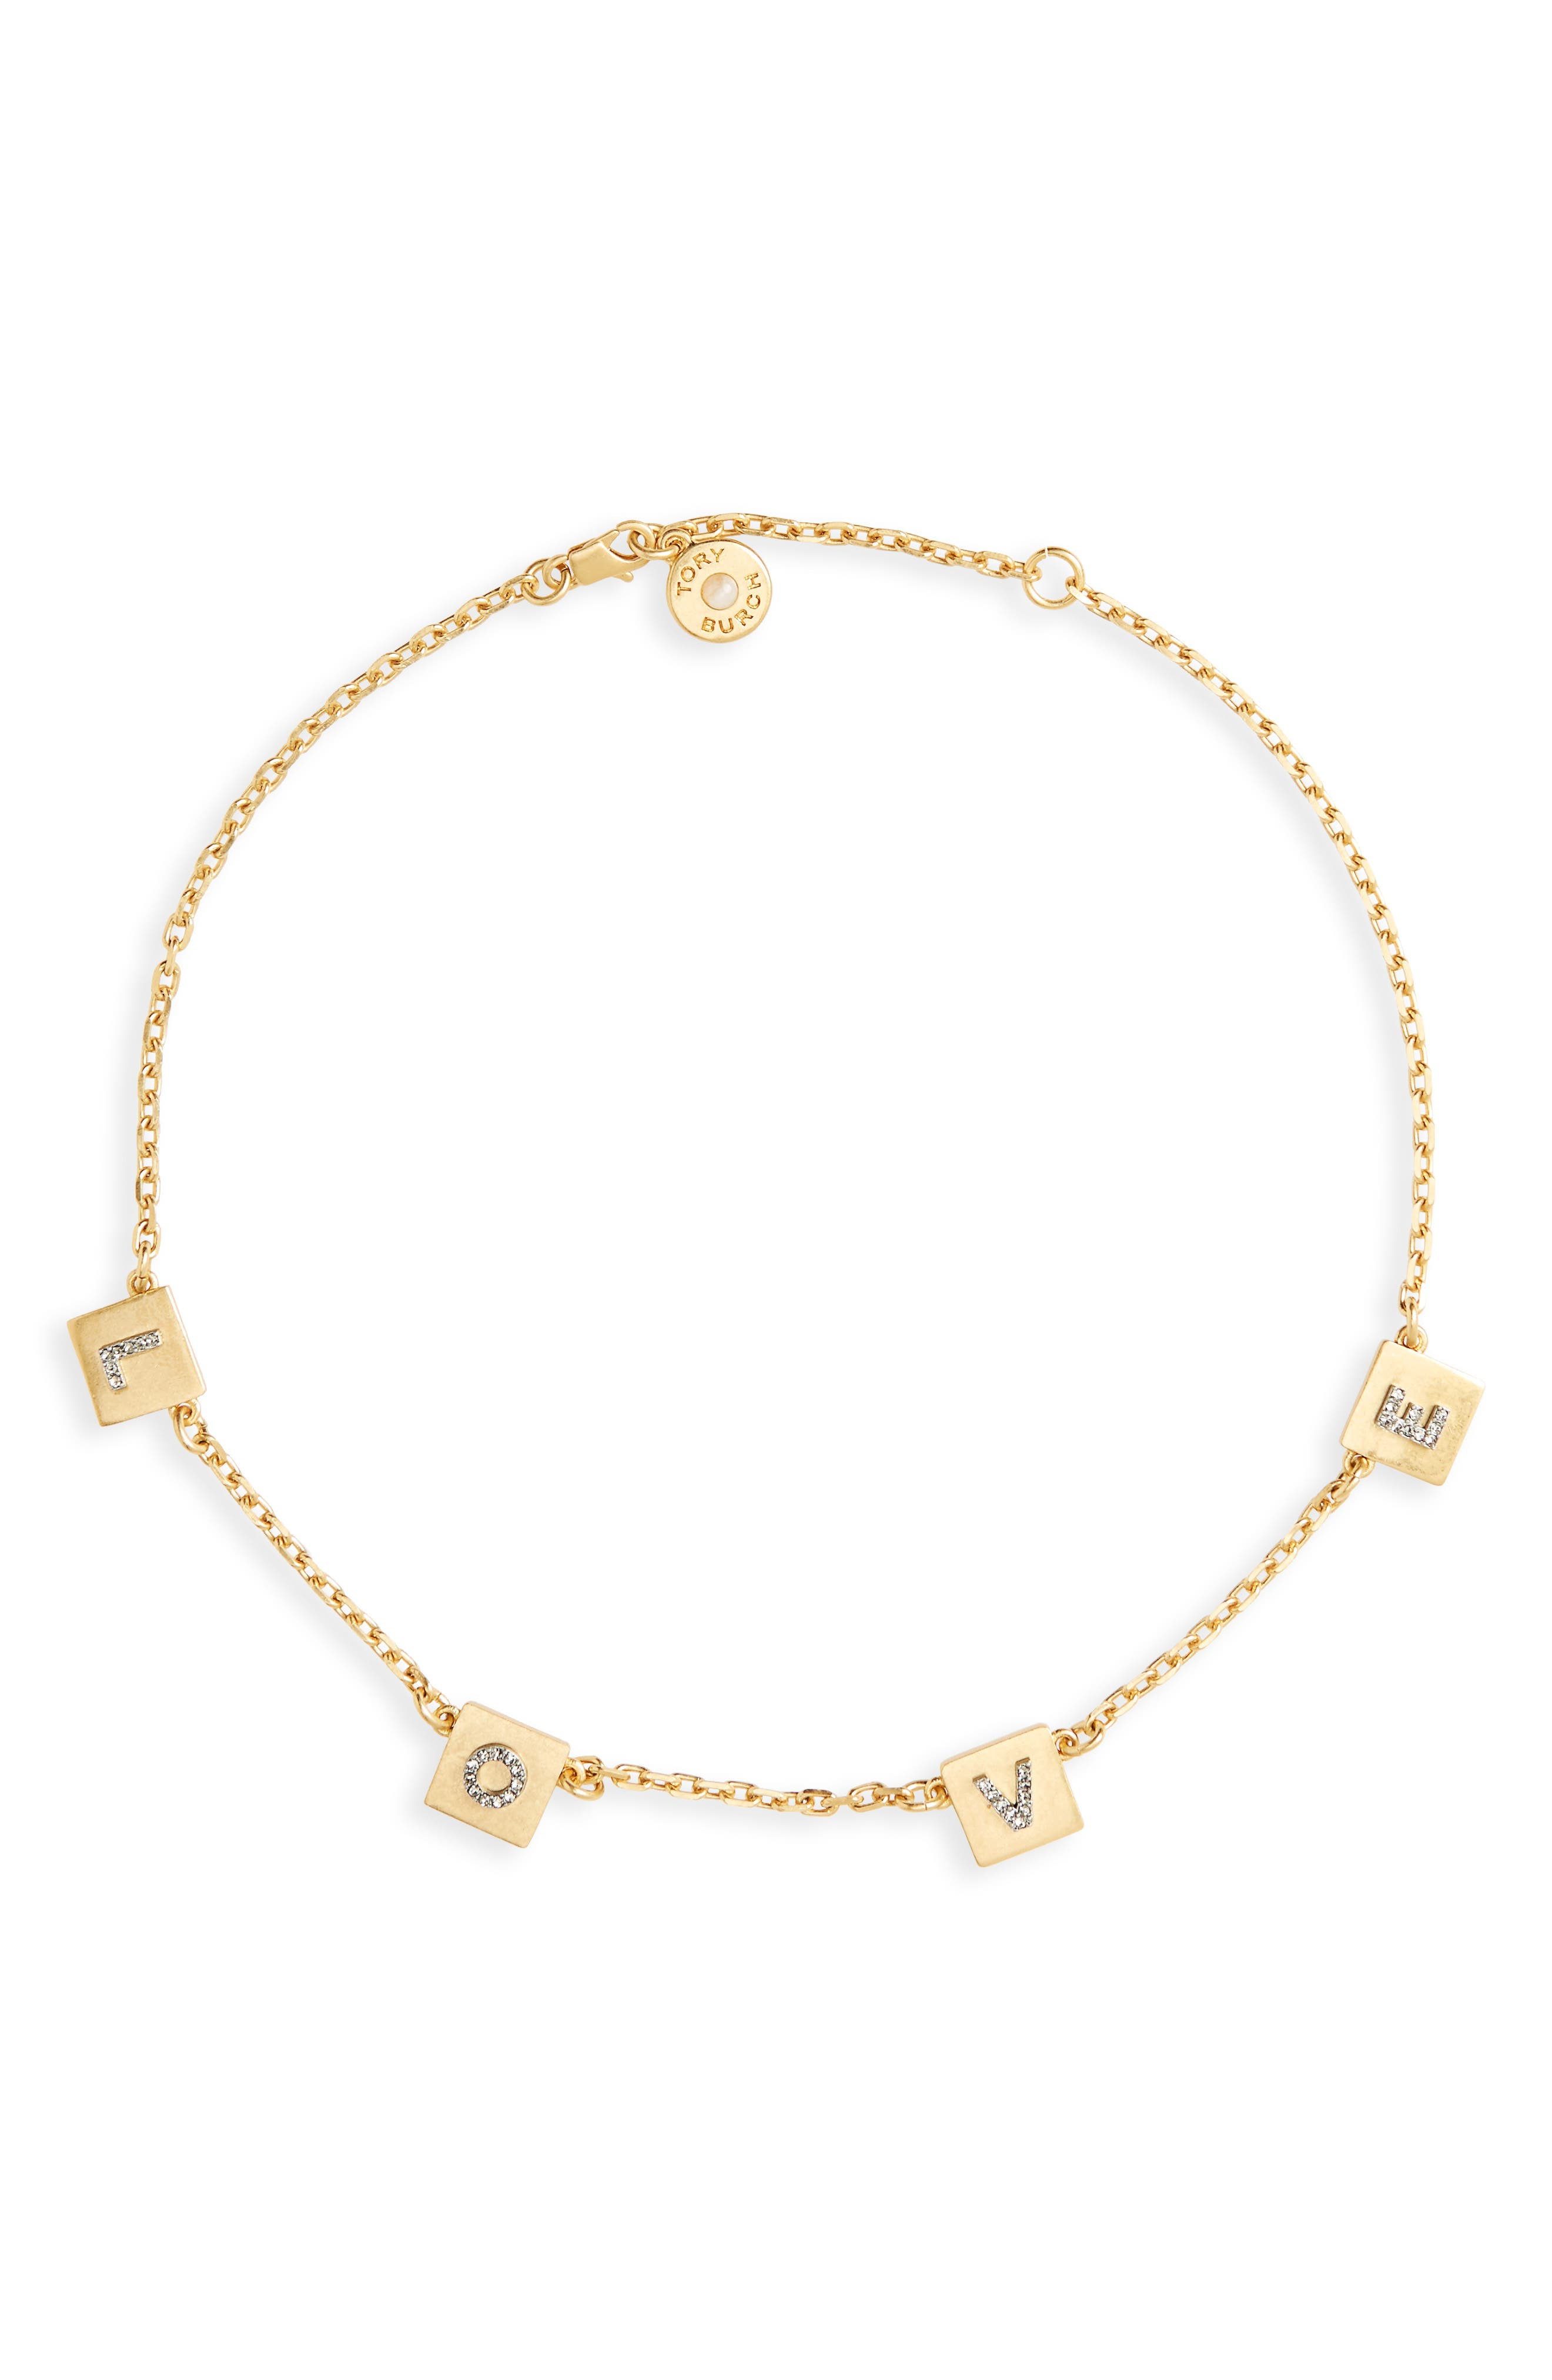 Tory Burch Love Message Collar Necklace